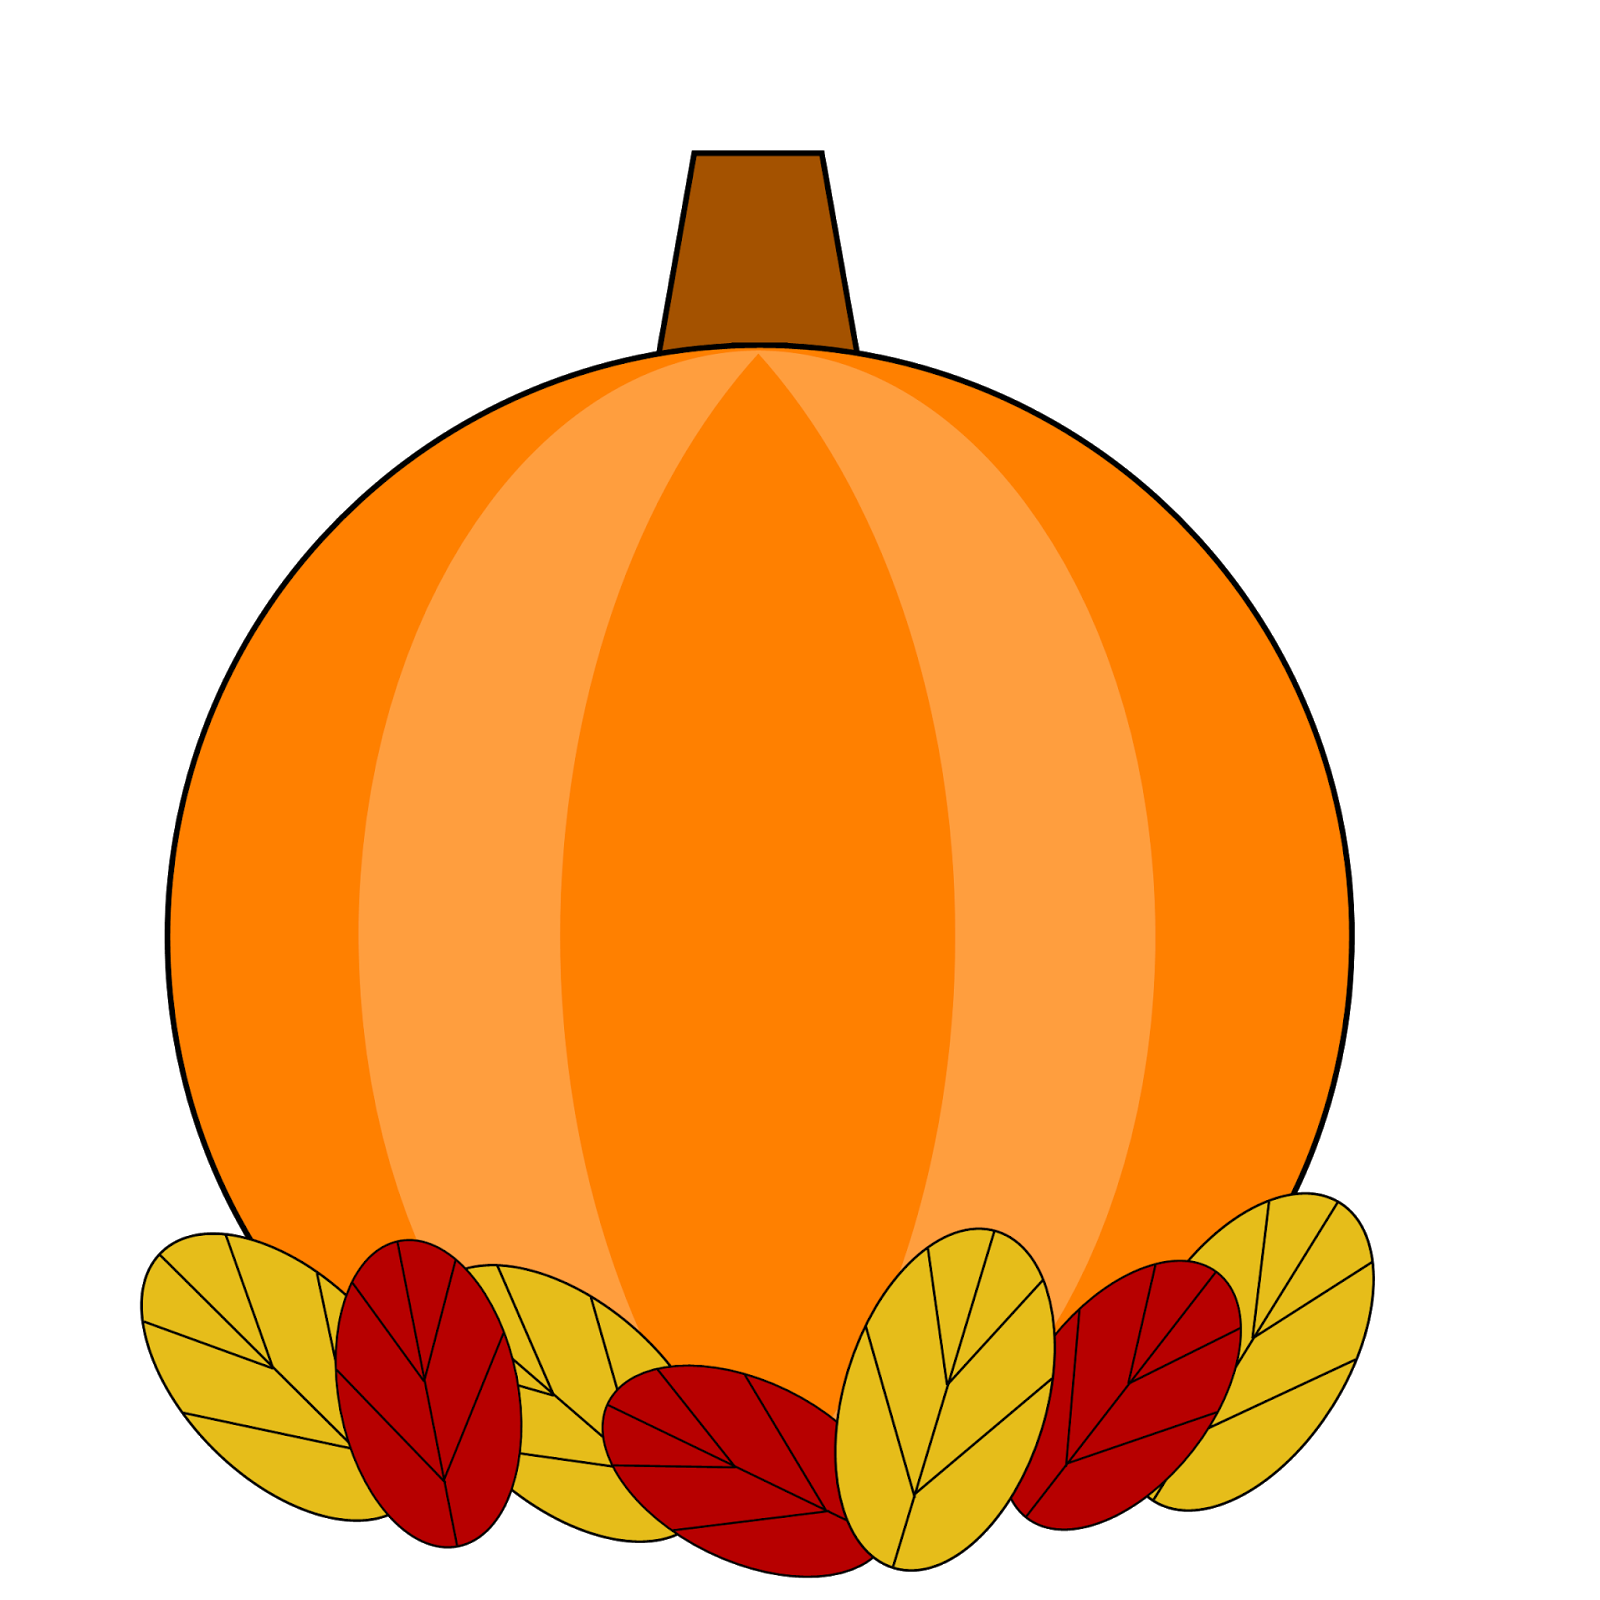 Happy thanksgiving pumpkins clipart image free Free Clipart N Images image free